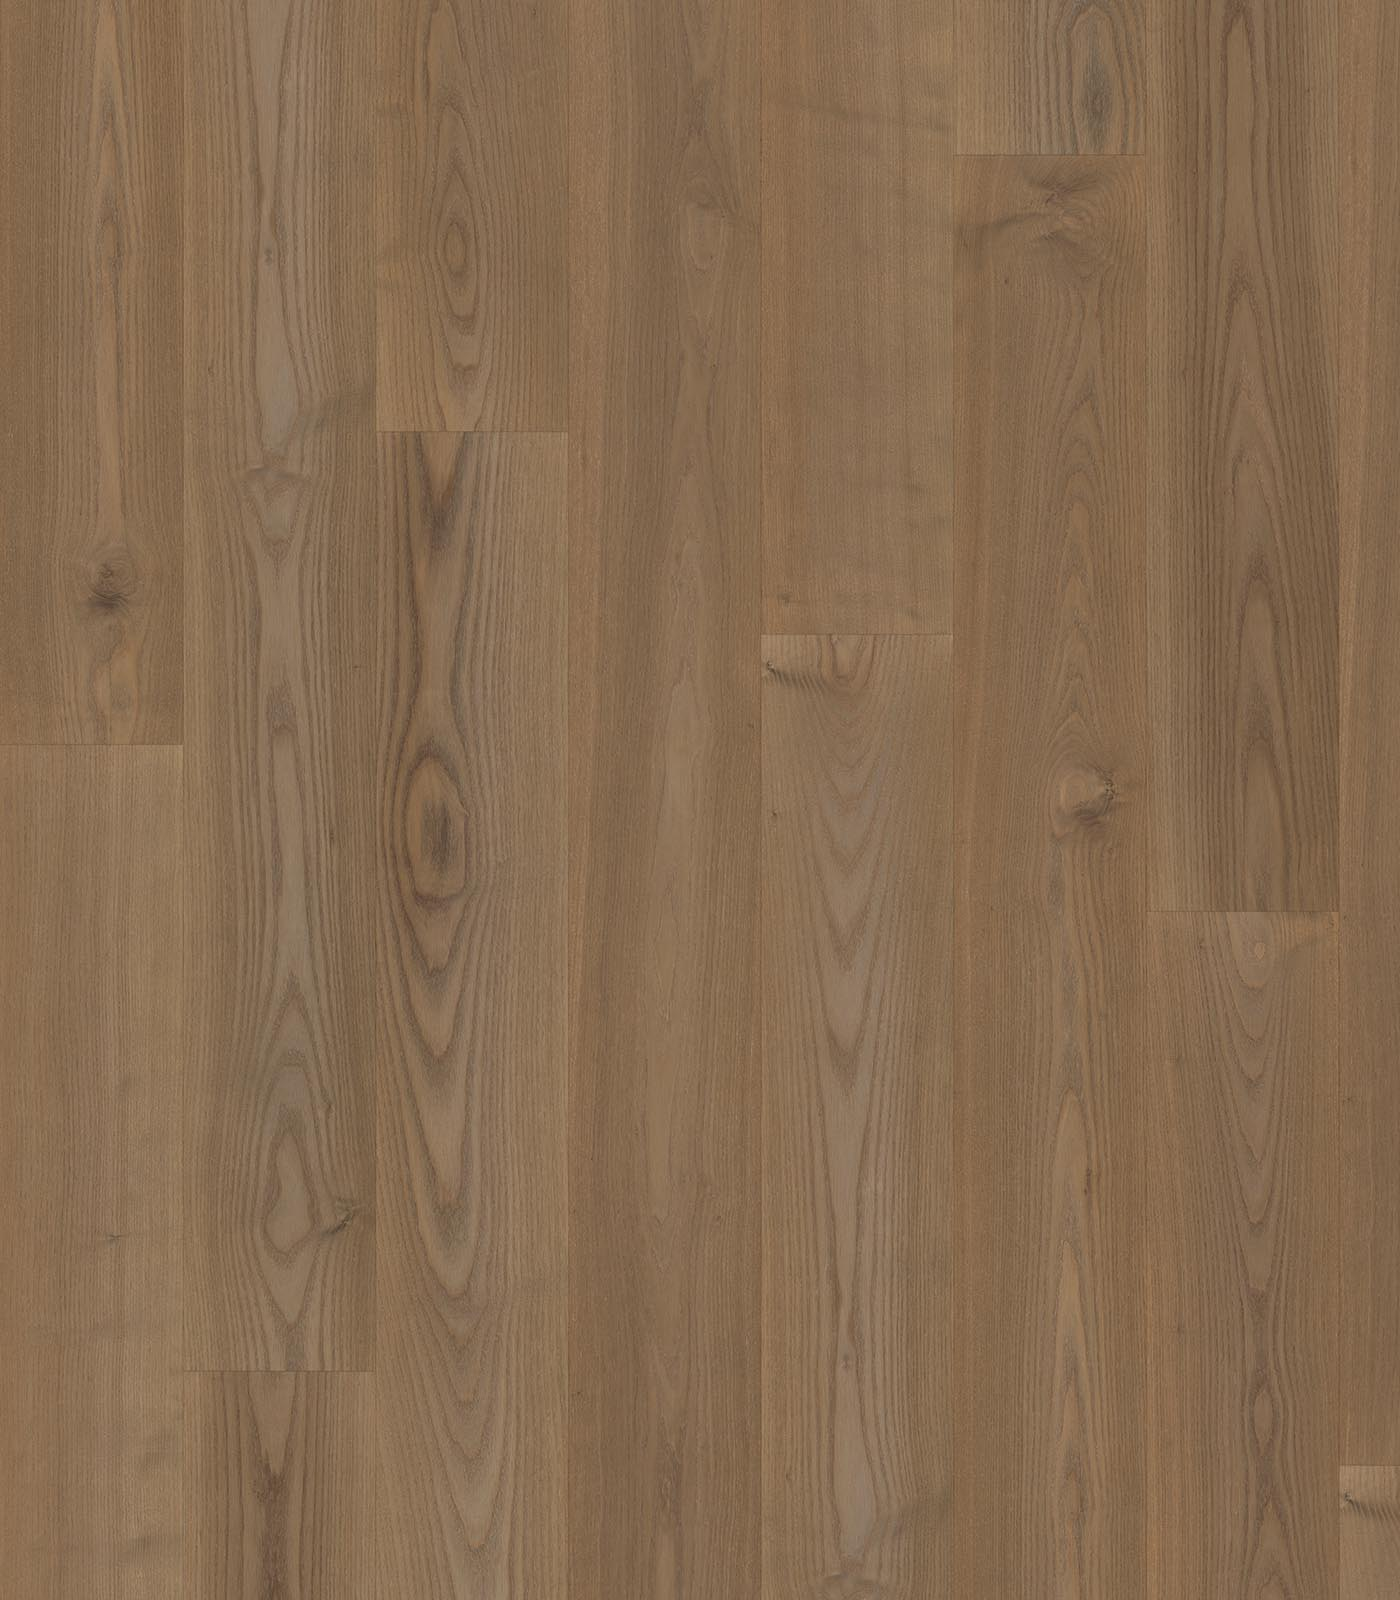 Marseille-After Oak Collection-European Ash Floors - flat